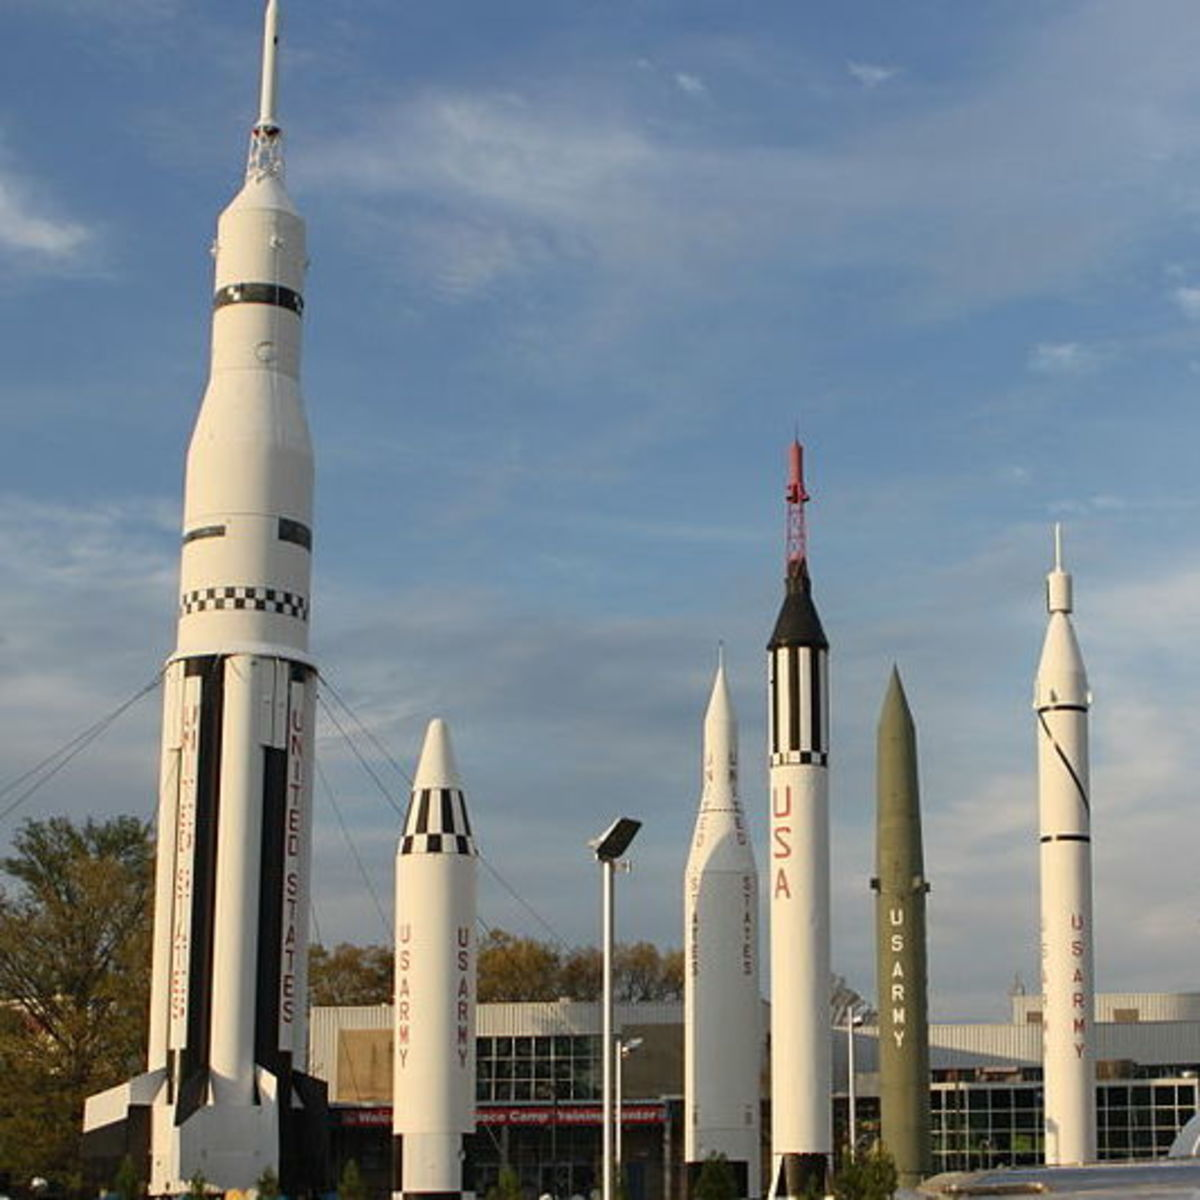 Some of the rockets in the U.S. Space & Rocket Center